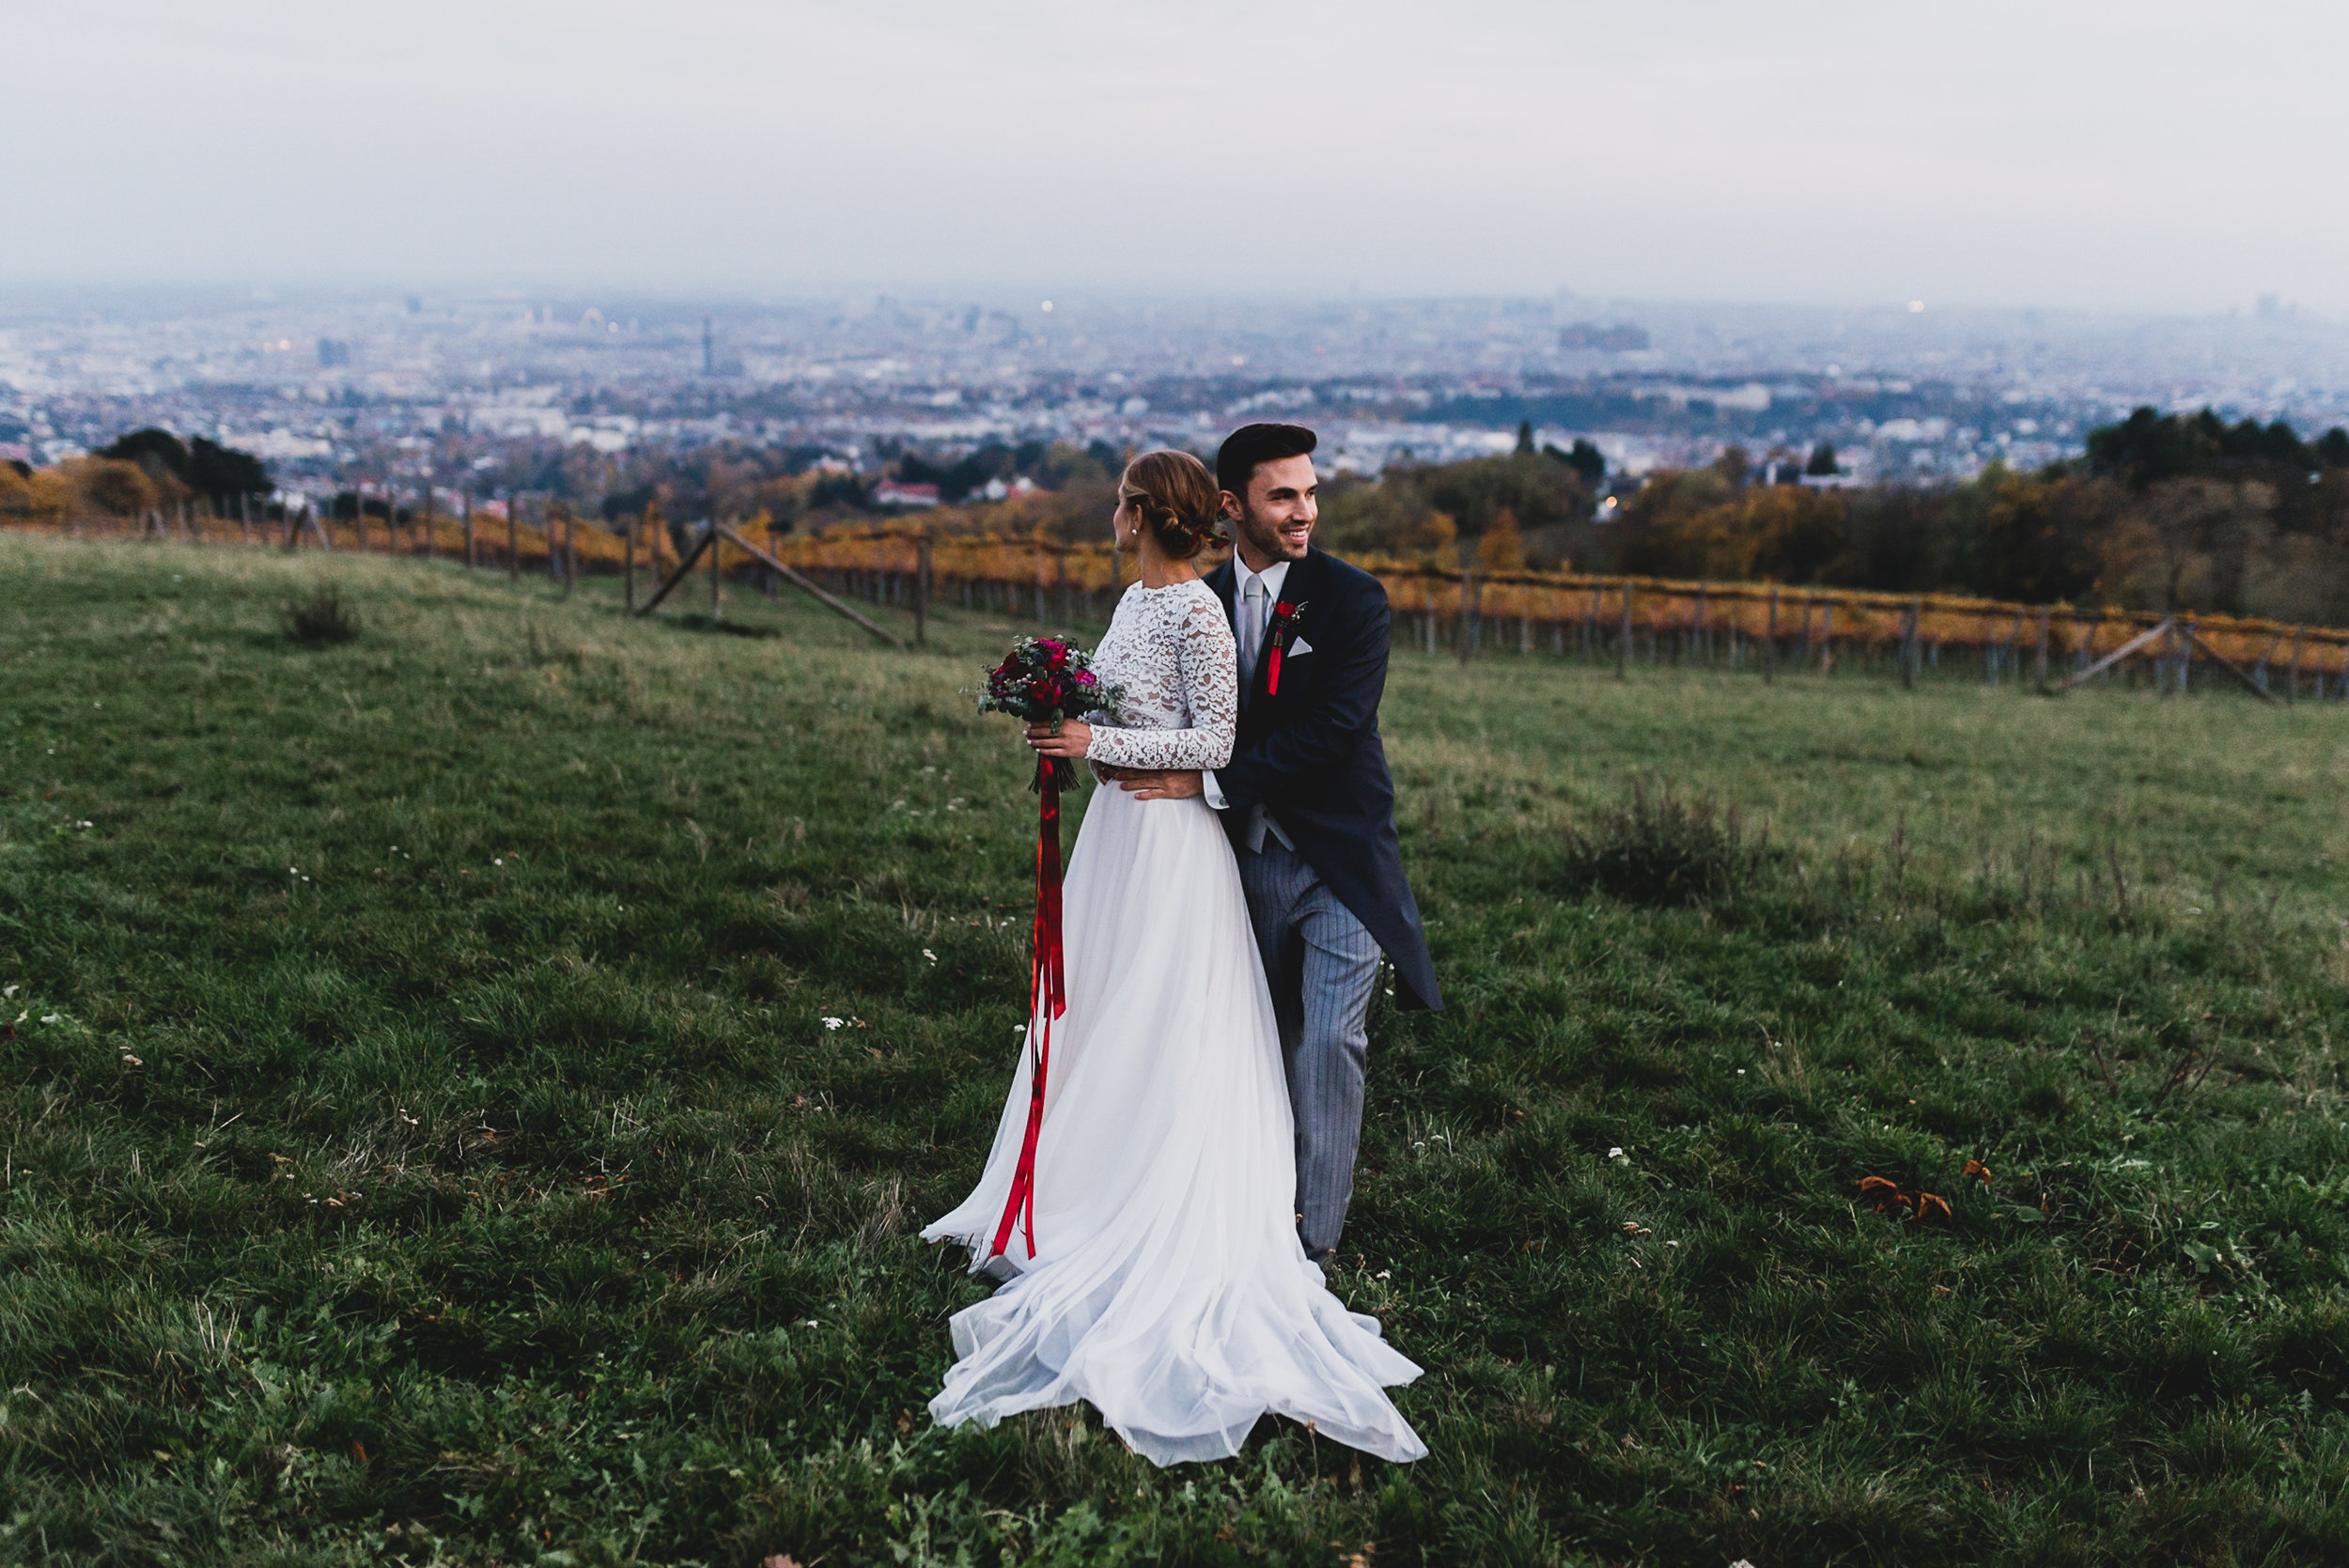 Constantin_Wedding_Wien-77.jpg